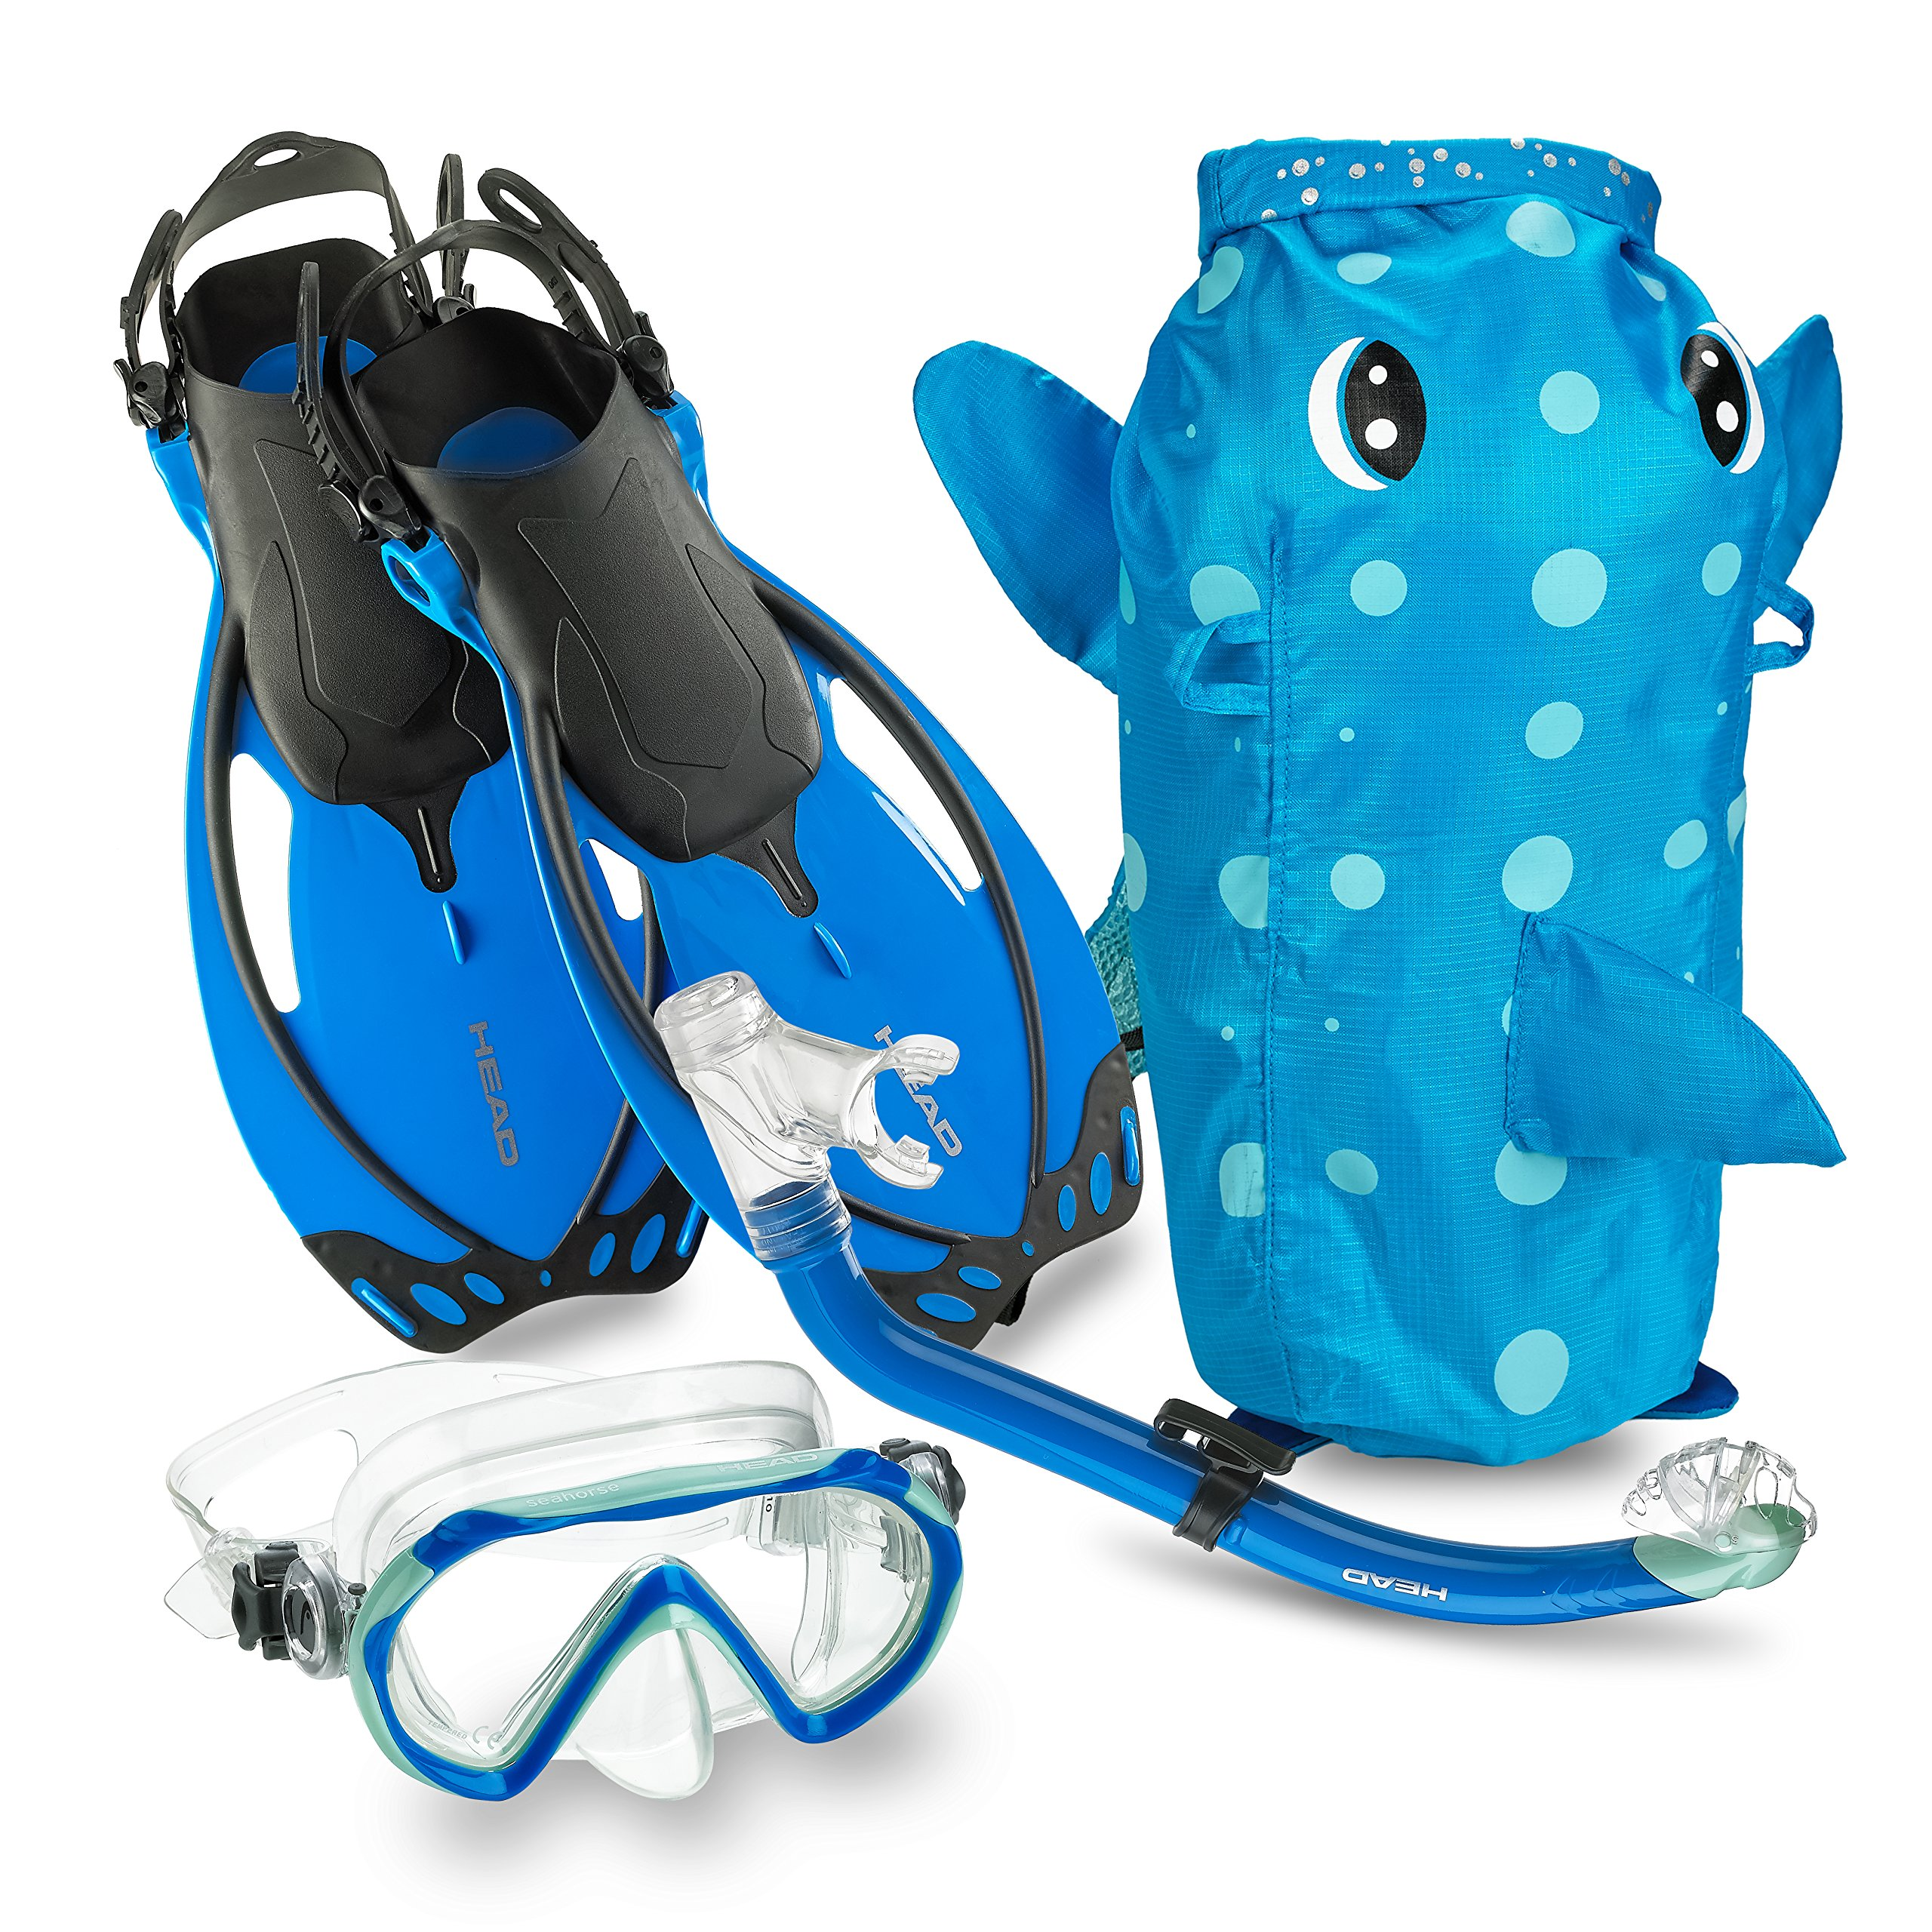 Mares Italian Collection Premium Youth Sea Pals Character Kids Mask Fin Snorkel Set Snorkeling Gear - Ultra-Clear Tempered Glass Lens Snorkeling Set (Blue, Large/1-4) by Mares